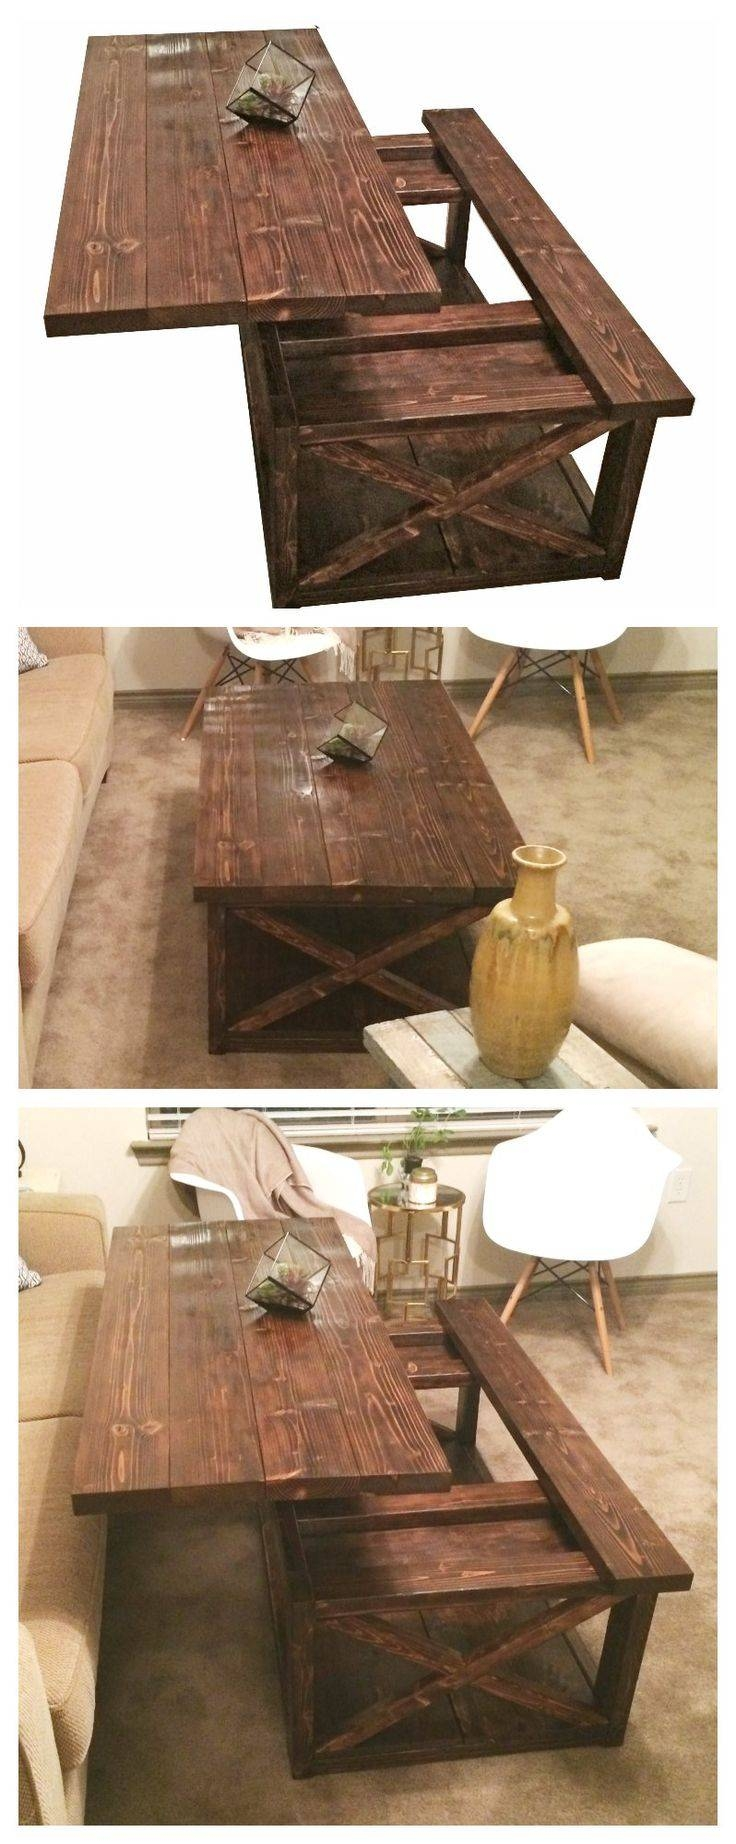 Best 10+ Coffee Table Storage Ideas On Pinterest | Coffee Table intended for Rustic Storage Diy Coffee Tables (Image 1 of 30)